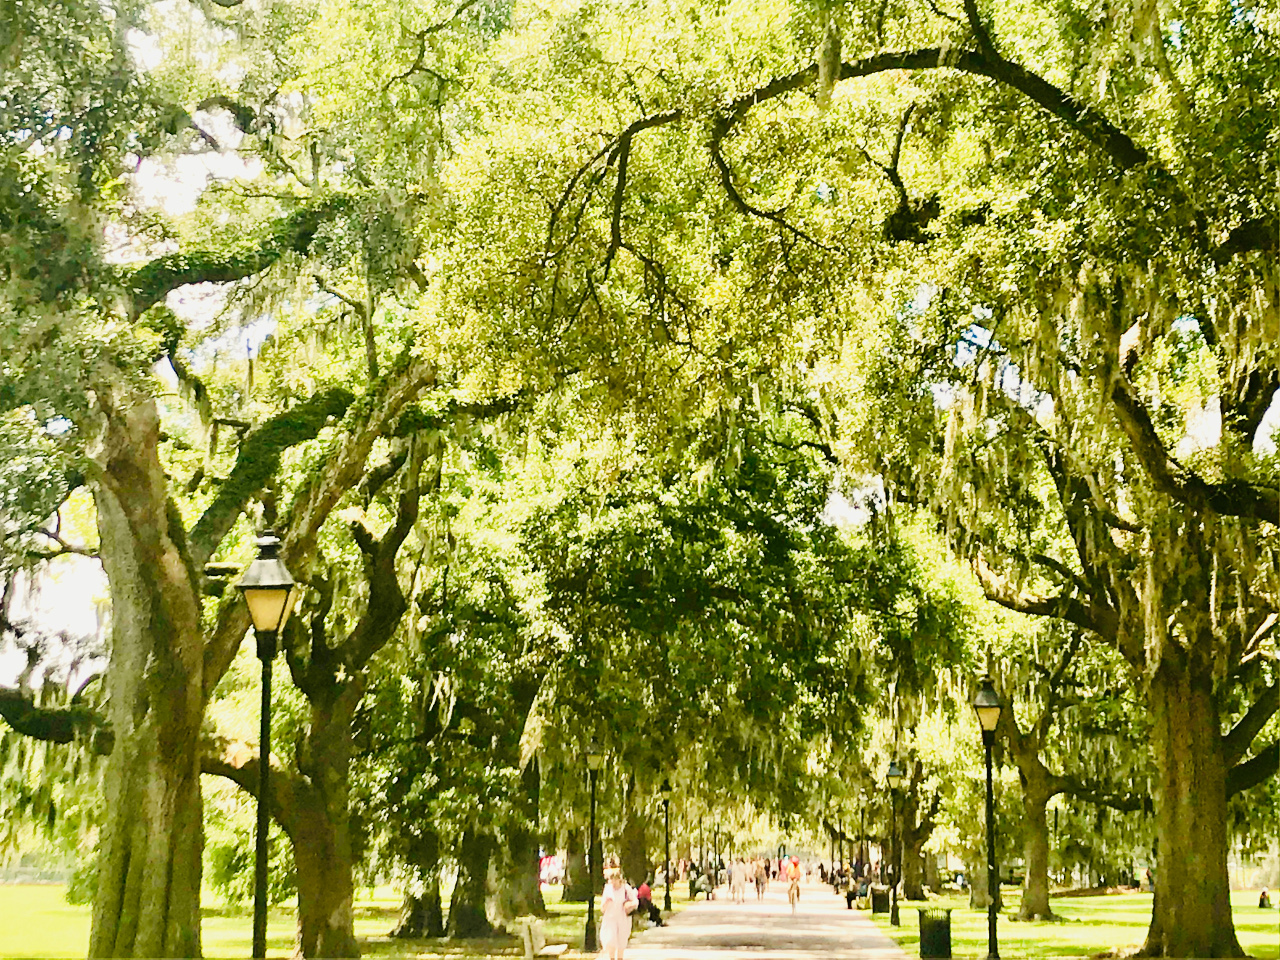 Discover Savannah off the beaten path - unique things to do in Savannah and near the city, including Tybee Island. #savannah #georgia #usa #savannahguide